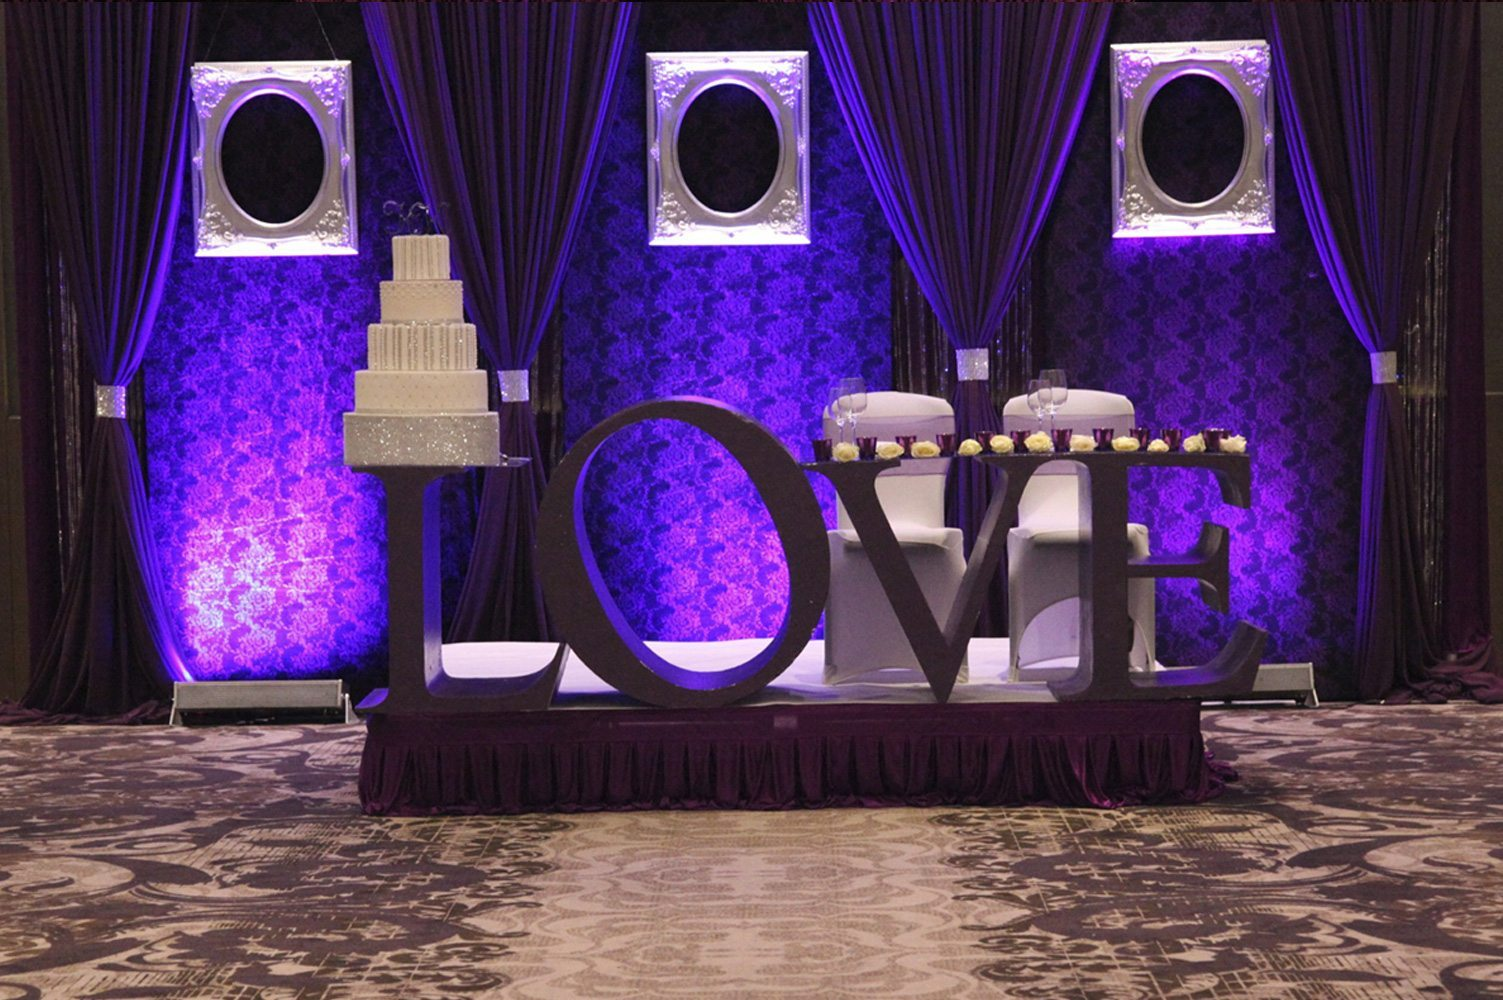 Props and Event Decor